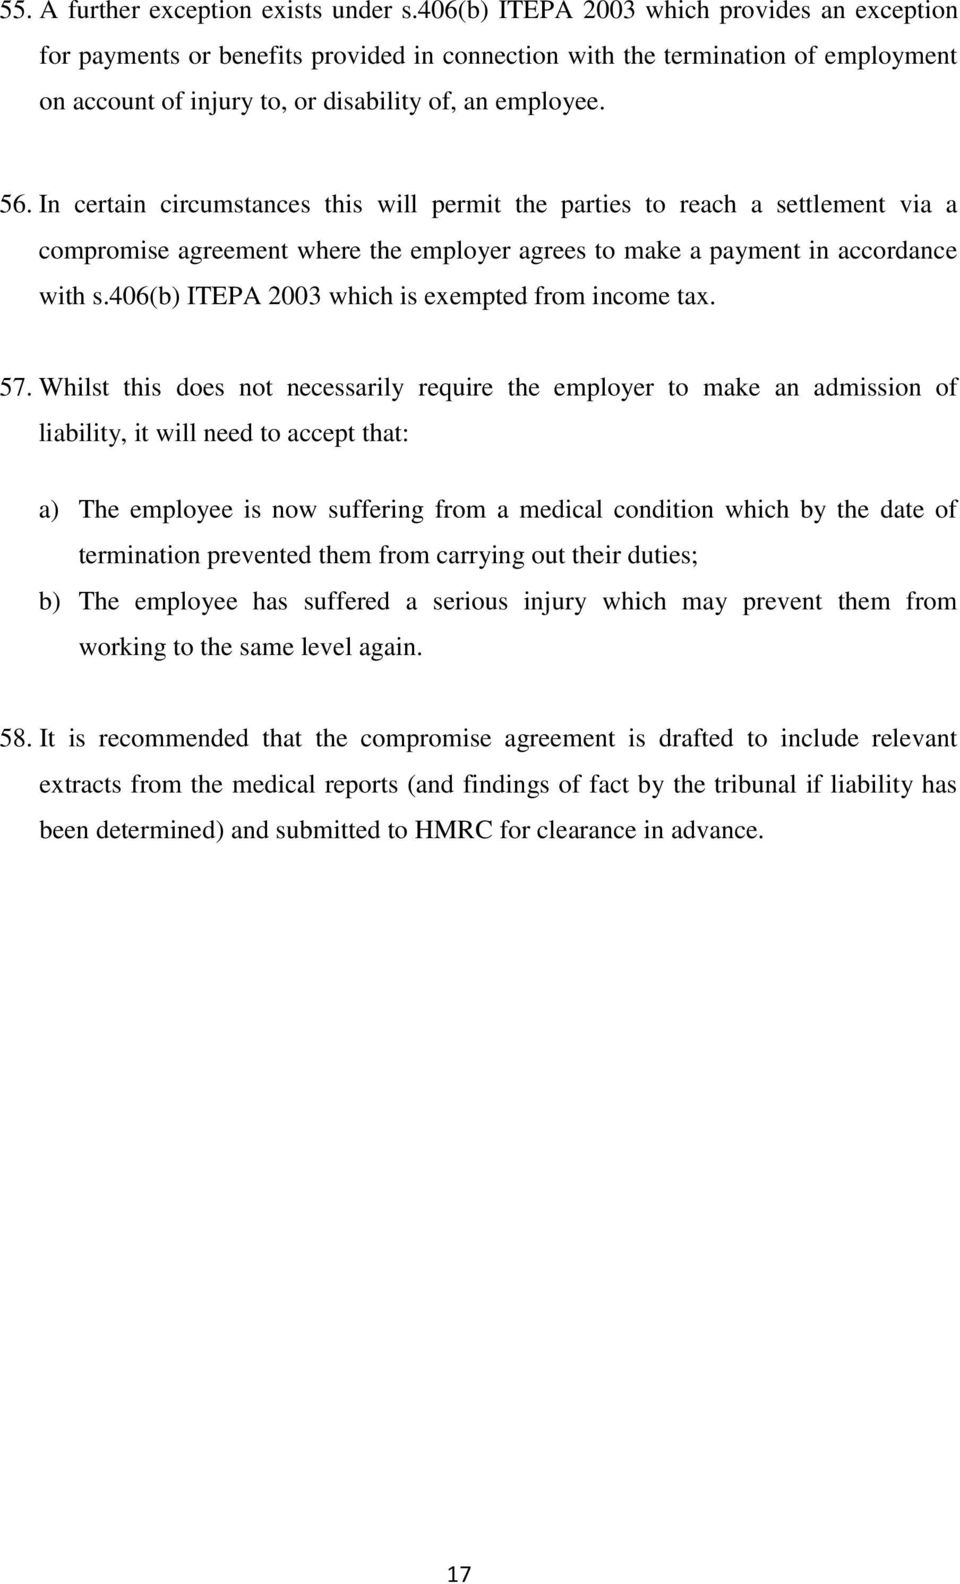 In certain circumstances this will permit the parties to reach a settlement via a compromise agreement where the employer agrees to make a payment in accordance with s.